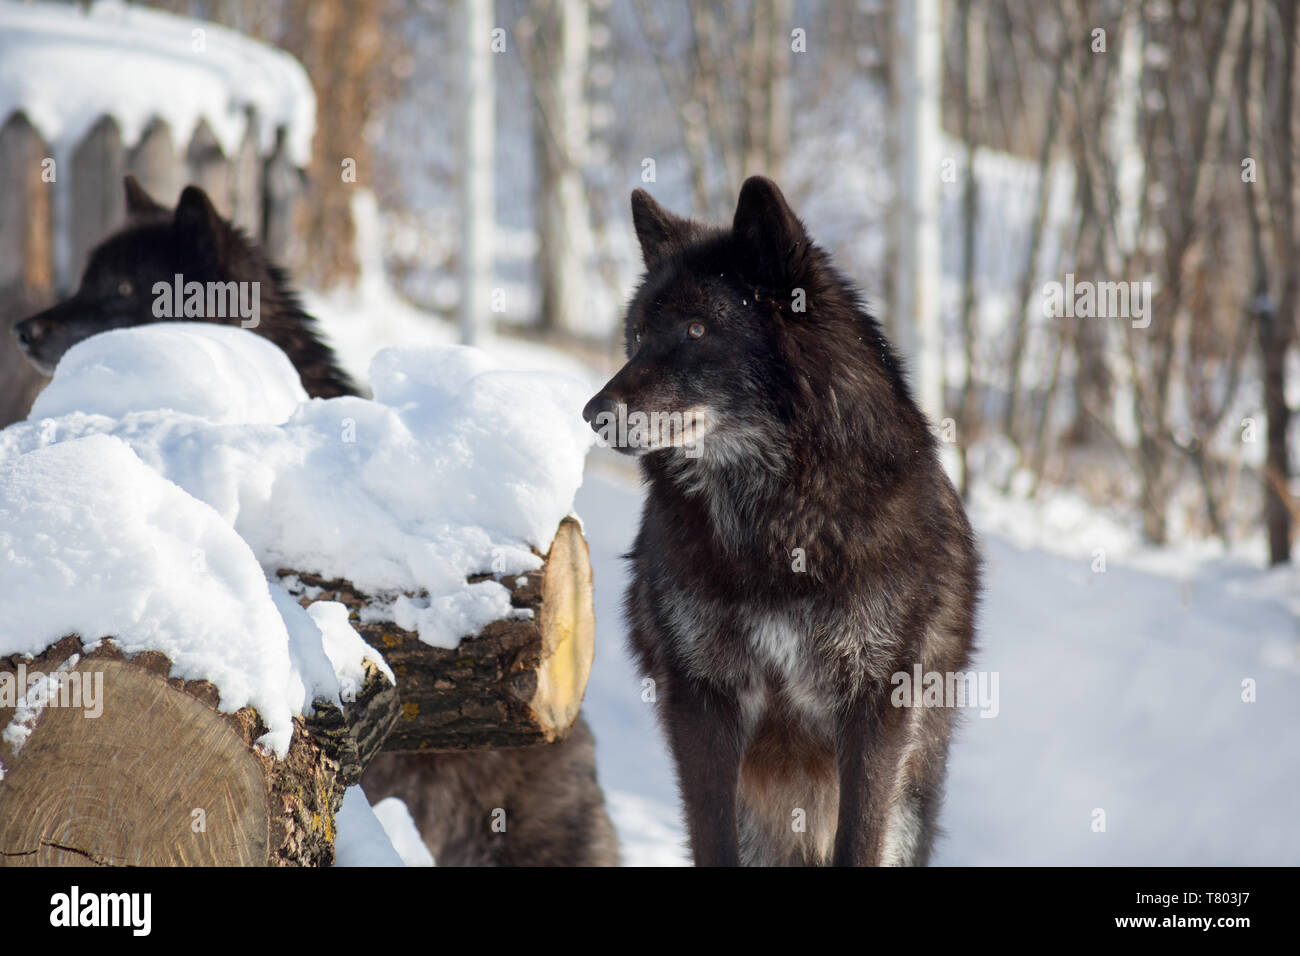 Two black canadian wolves are standing on the white snow. Canis lupus pambasileus. Animals in wildlife. Stock Photo